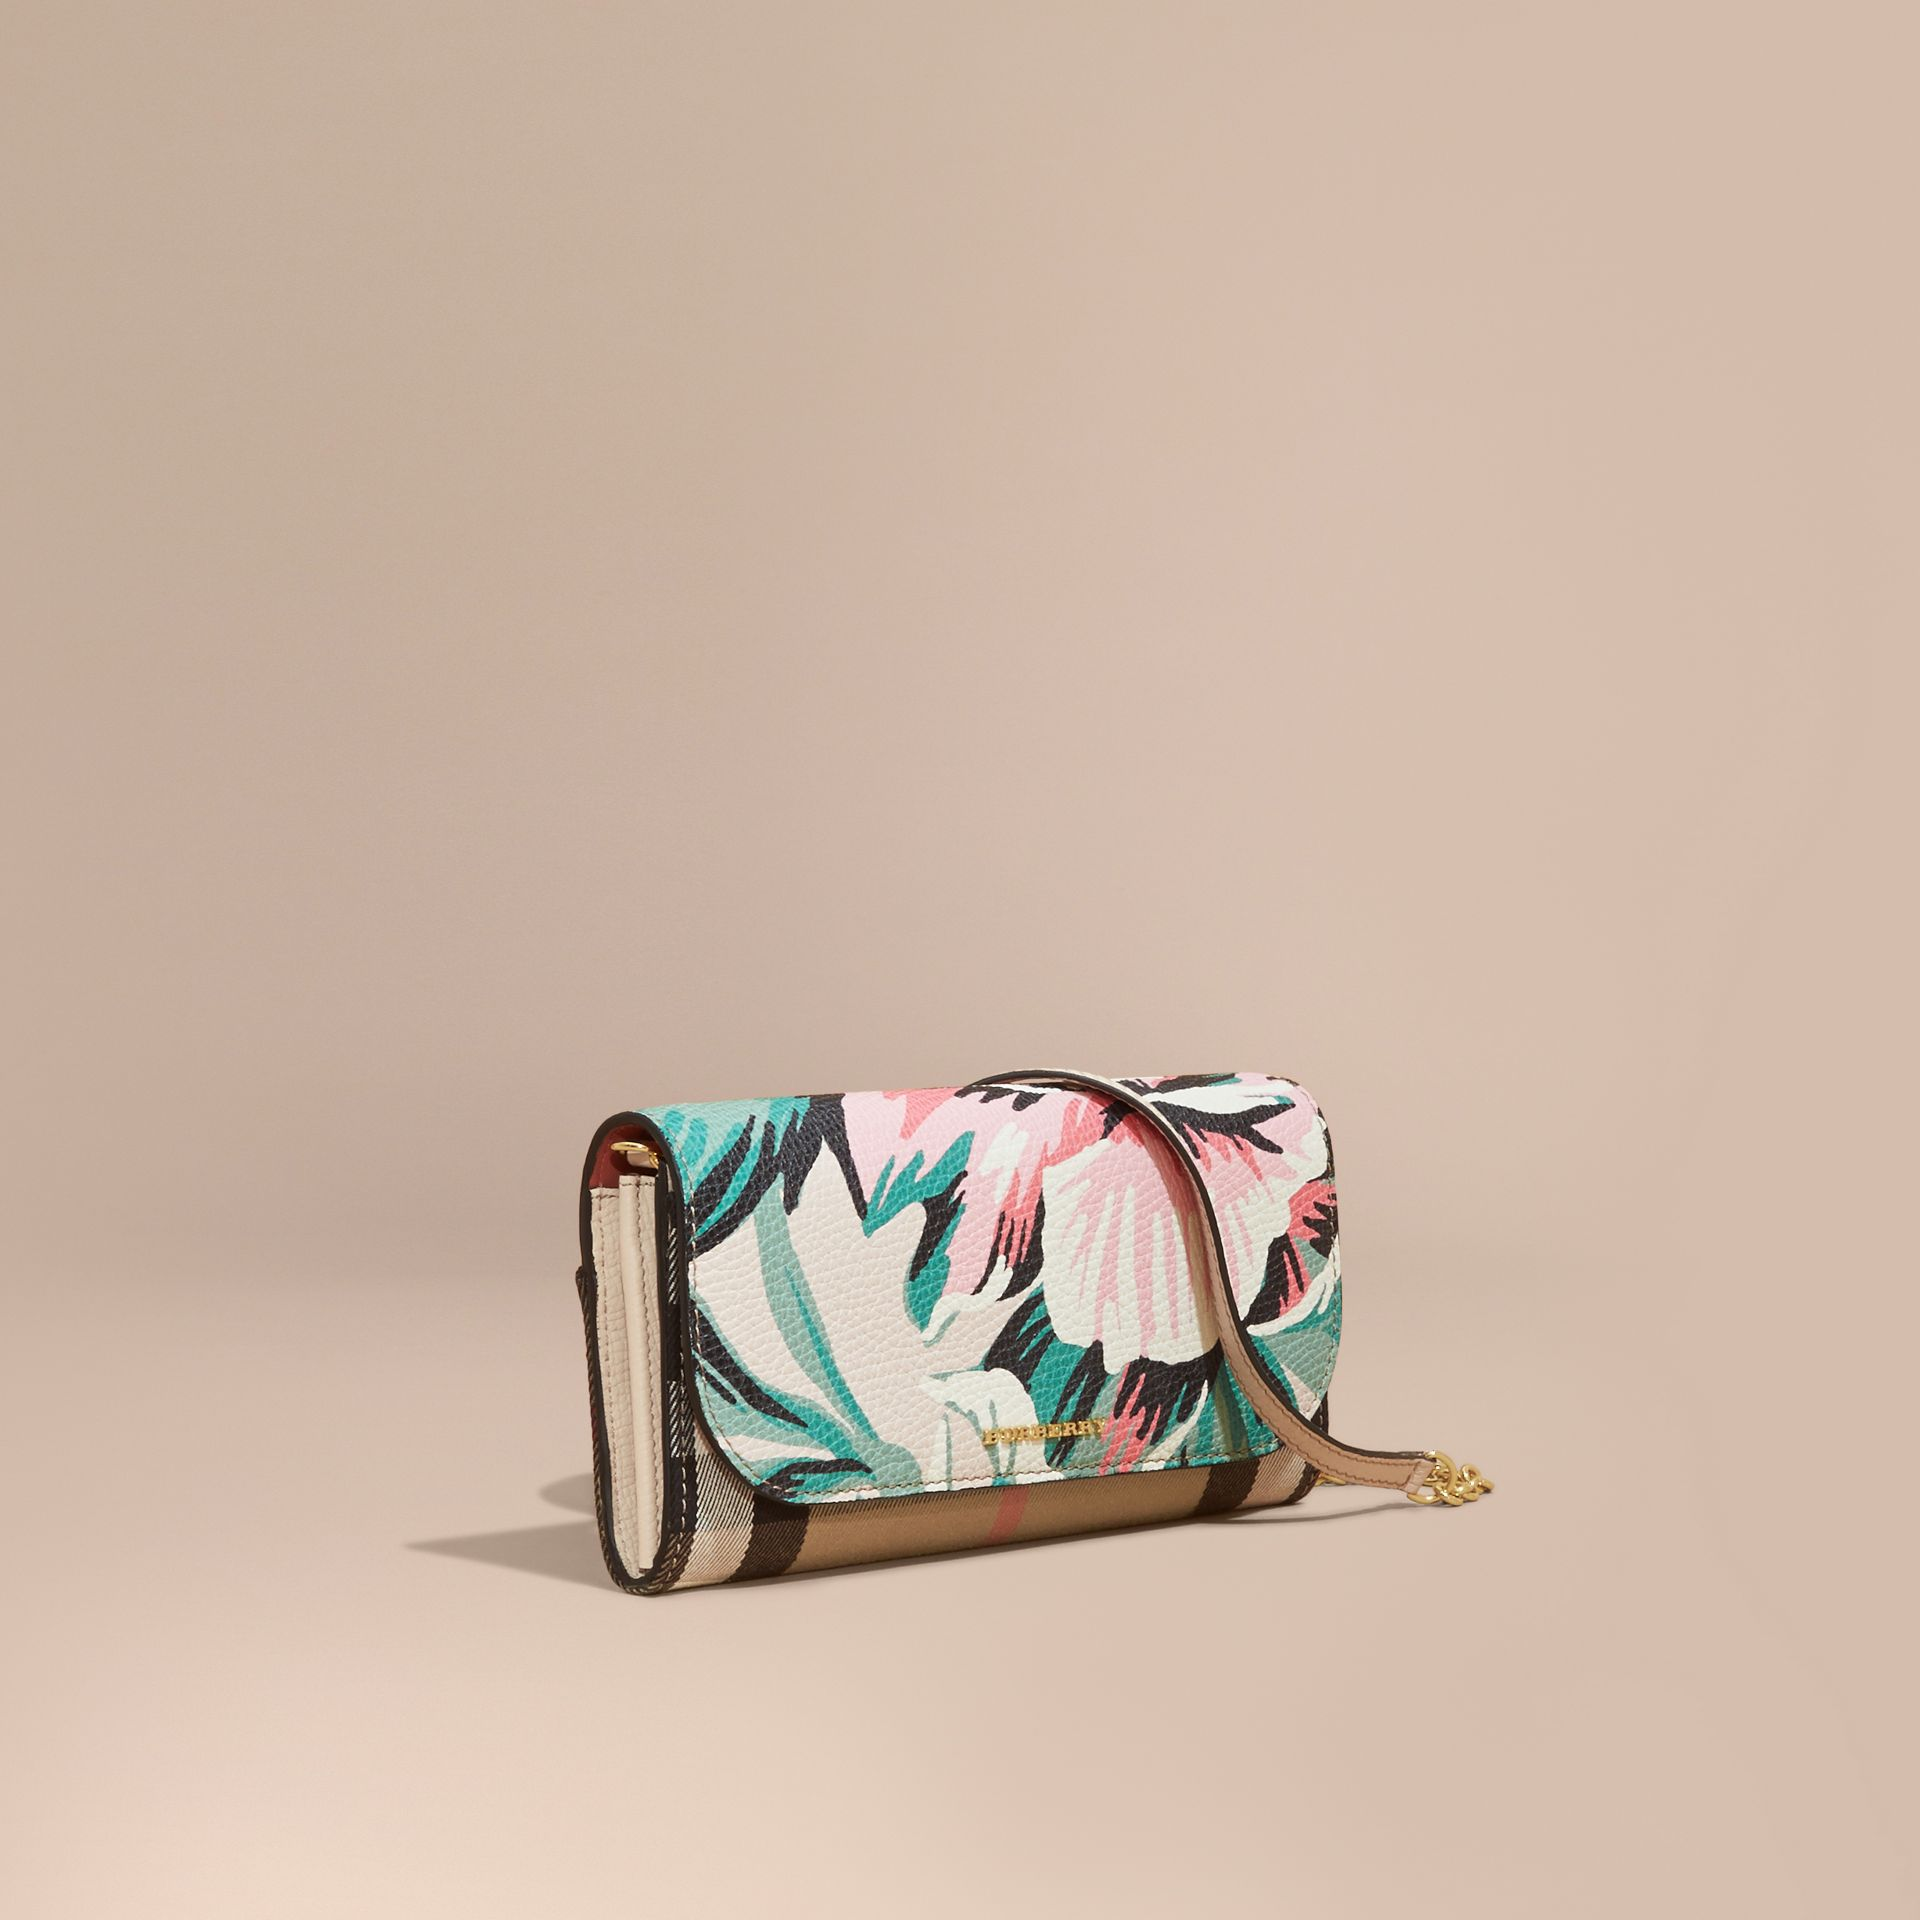 House Check and Peony Rose Print Wallet with Chain in Limestone/emerald Green - gallery image 1